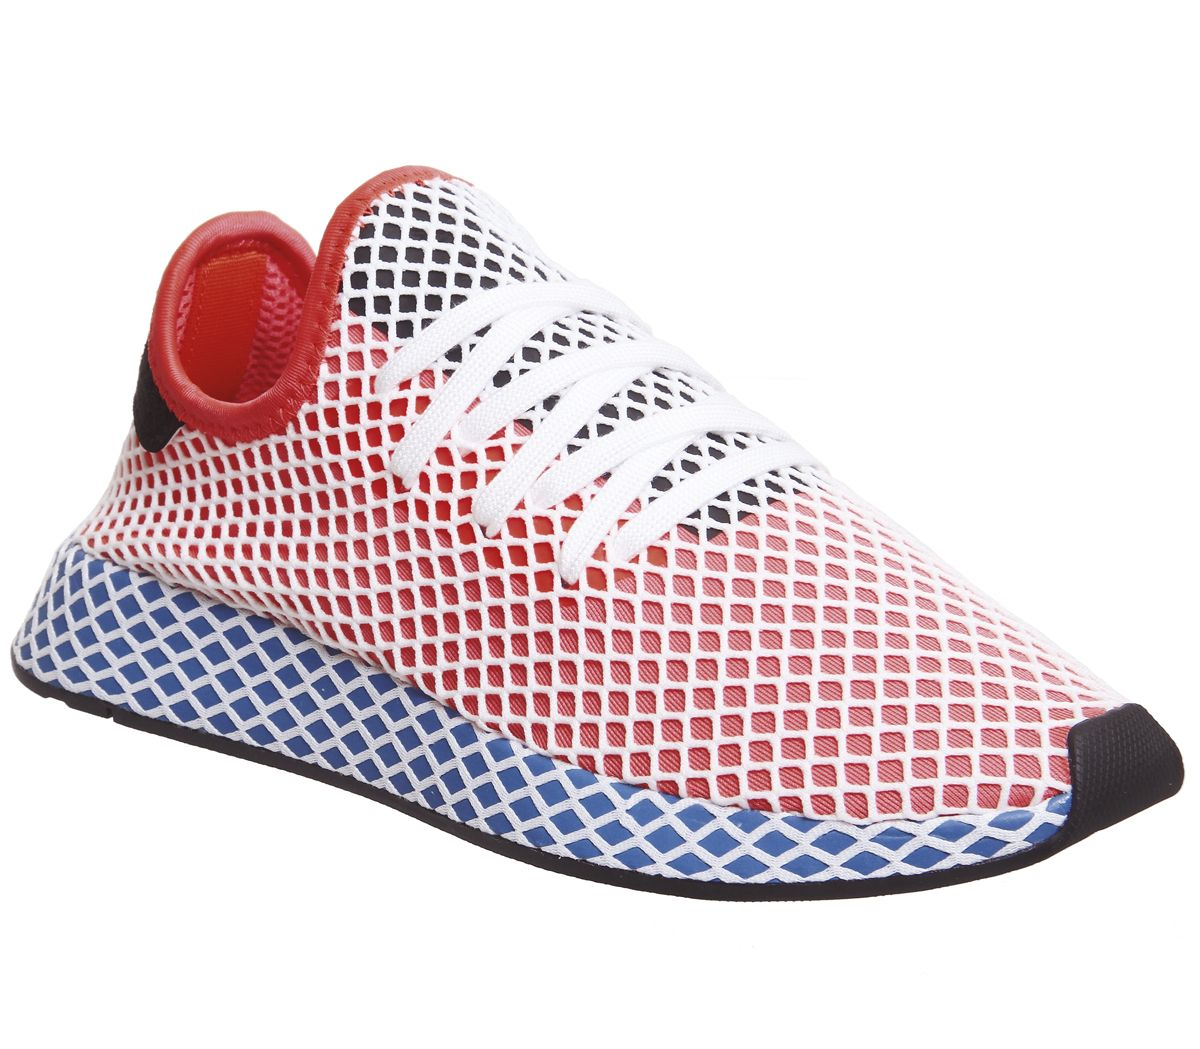 16f37e730 adidas Deerupt Trainers Solar Red Solar Red Bluebird - Unisex Sports